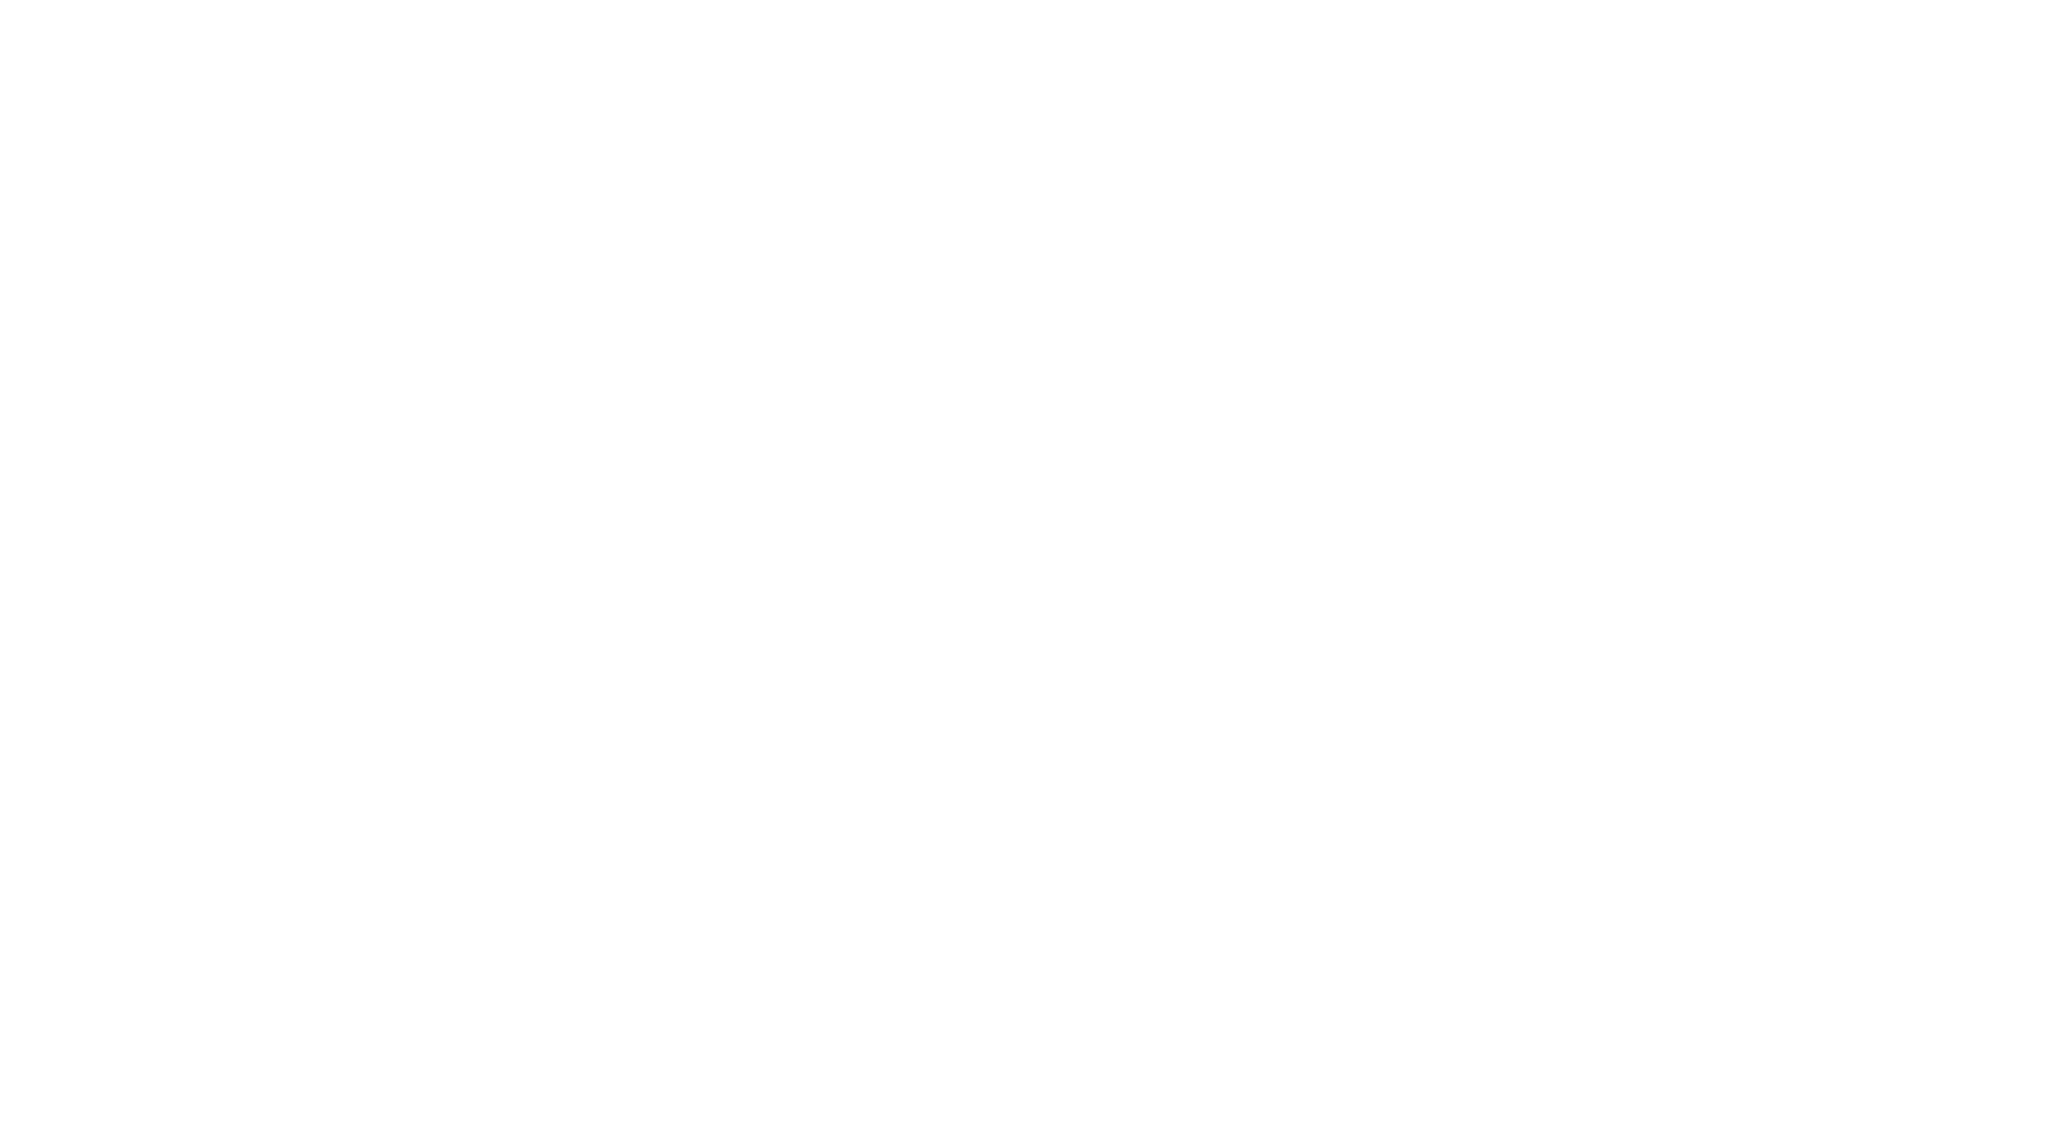 J. Edwards Holt